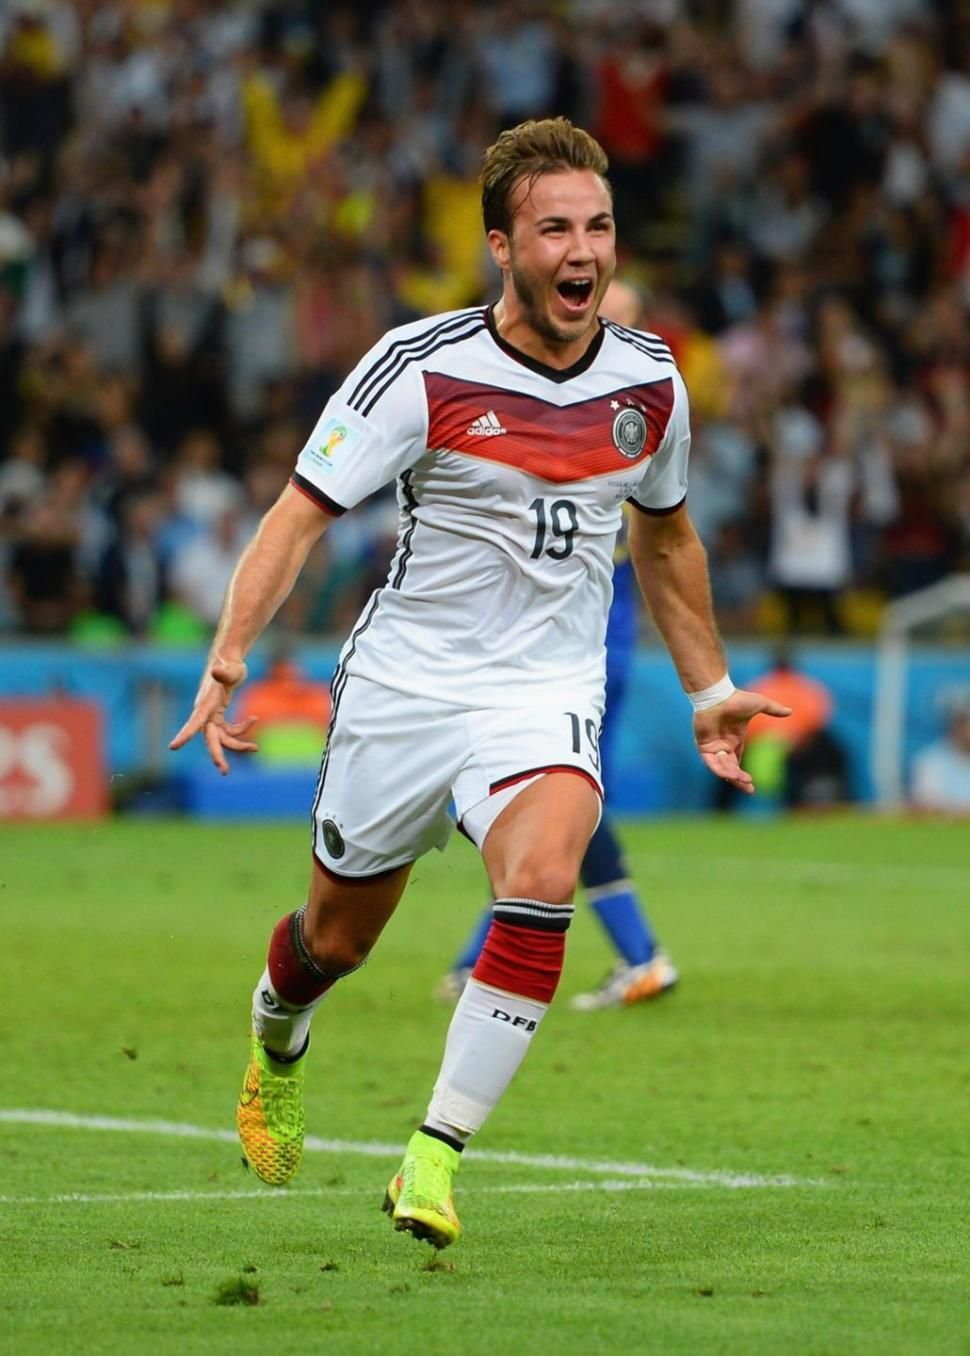 Germany Wins 2014 World Cup Mario Gotze Scores Game Winning